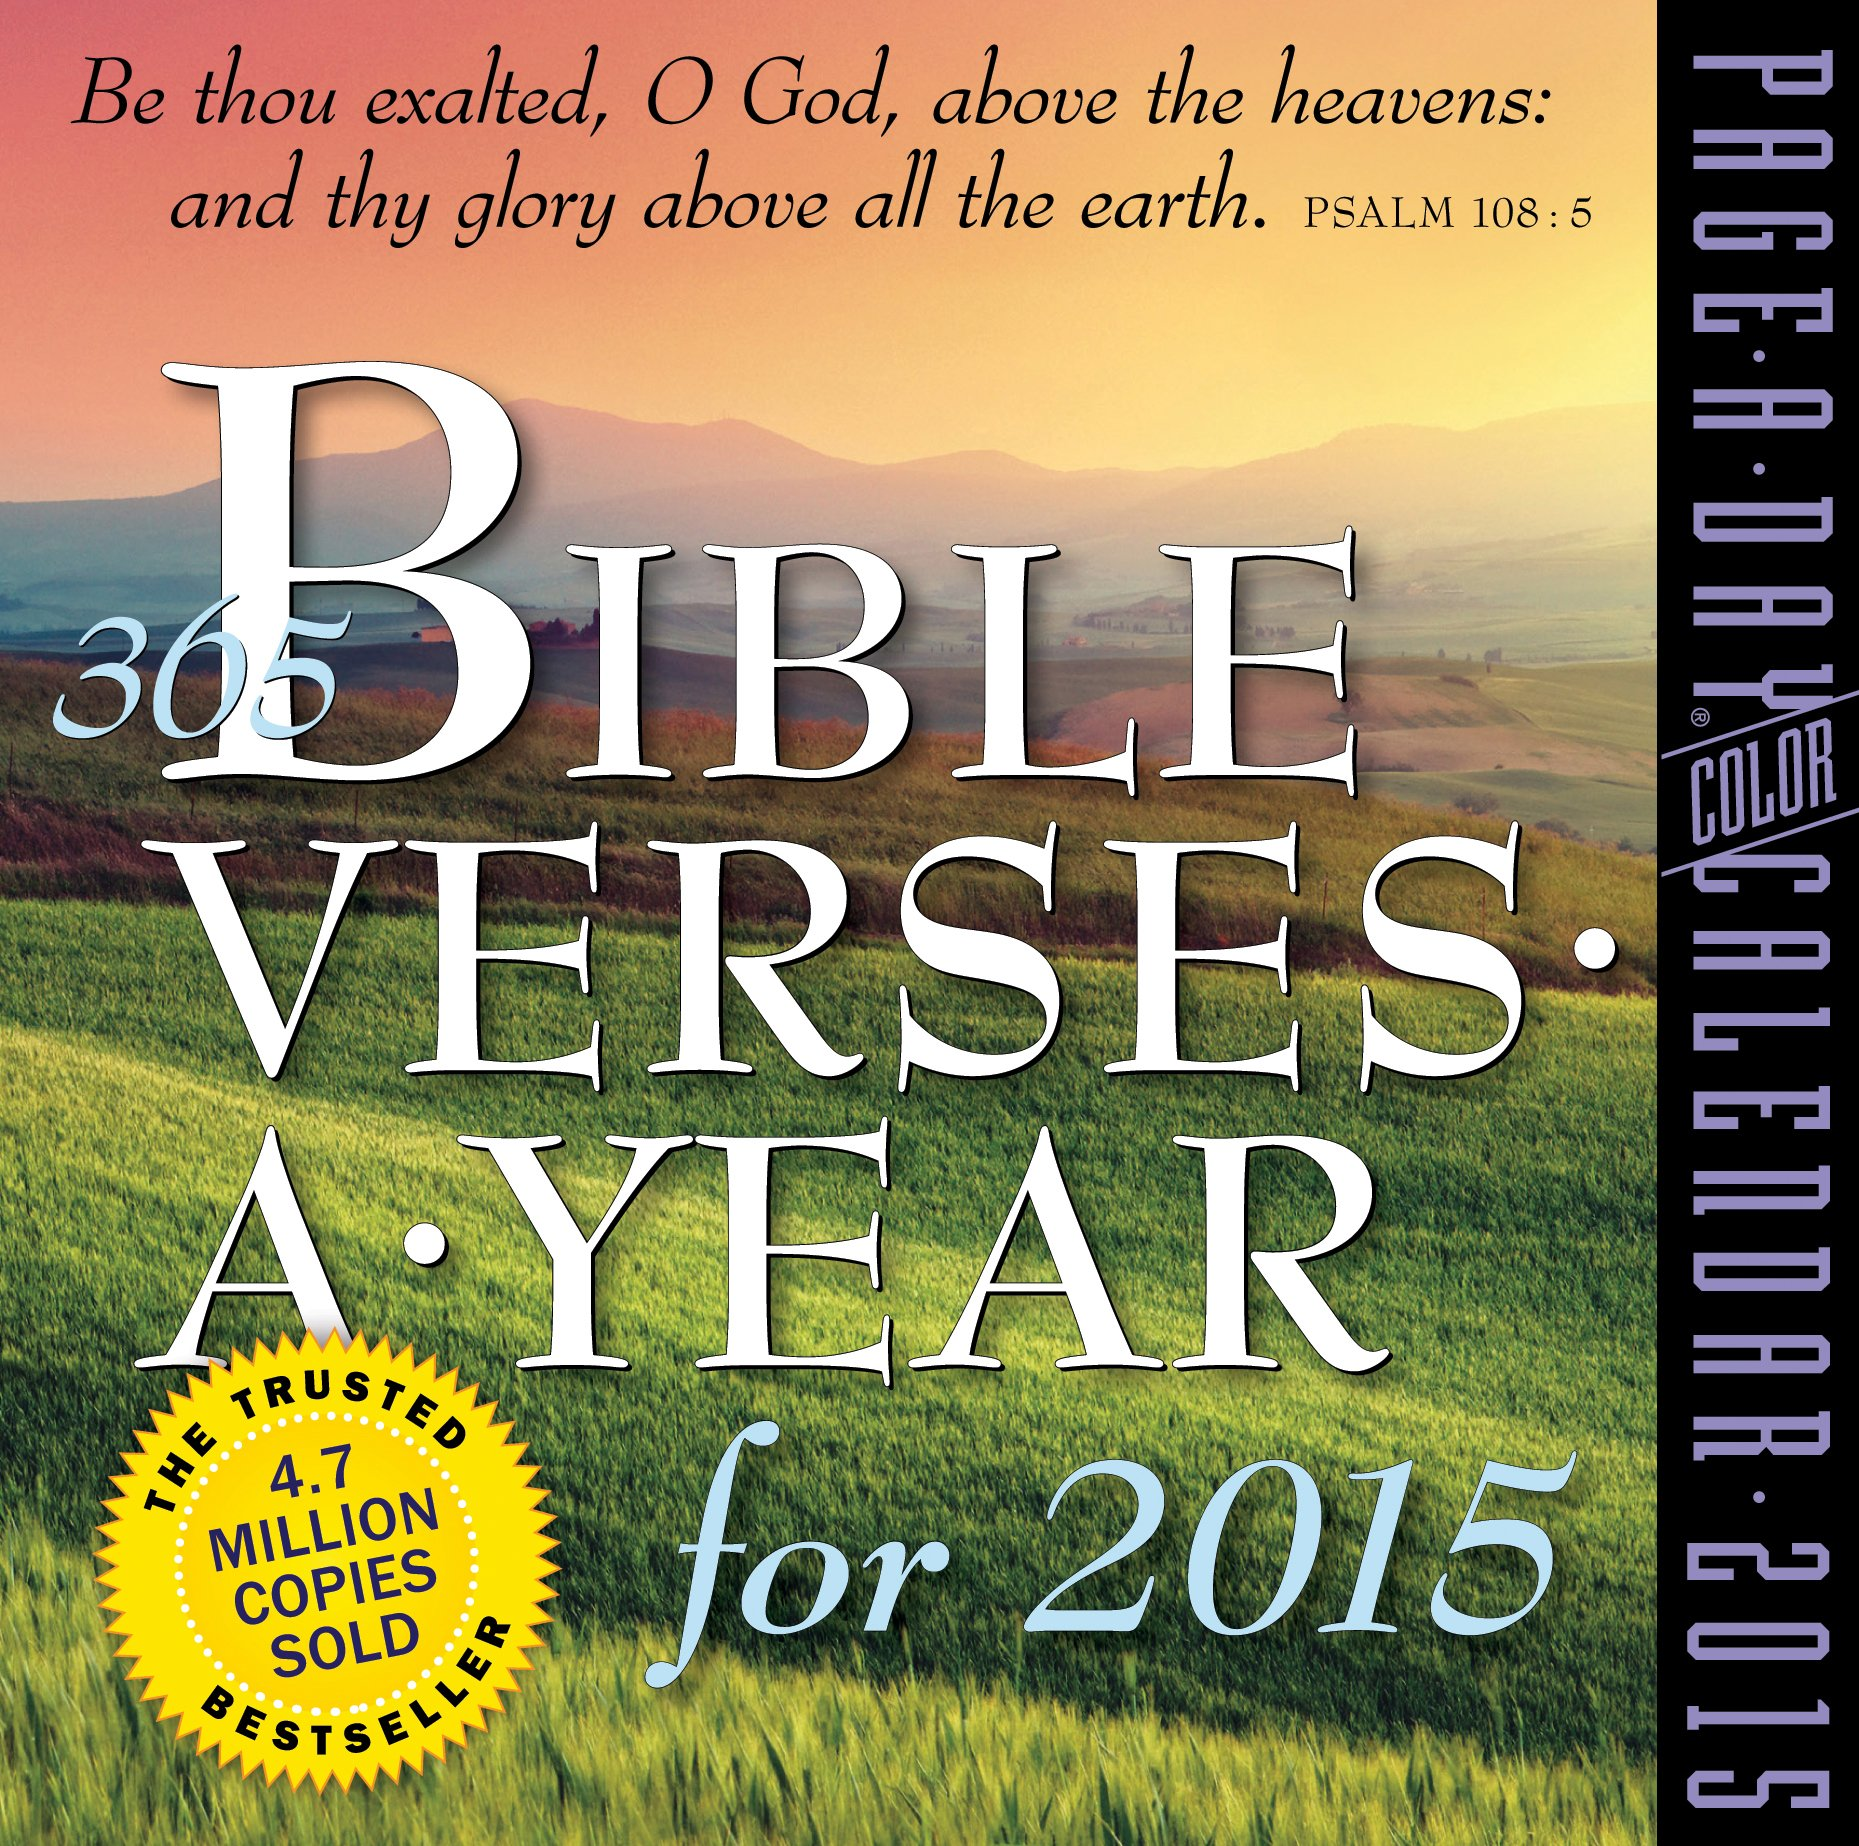 365 Bible Verses a Year 2015 Page-A-Day Calendar: Amazon.co.uk ...